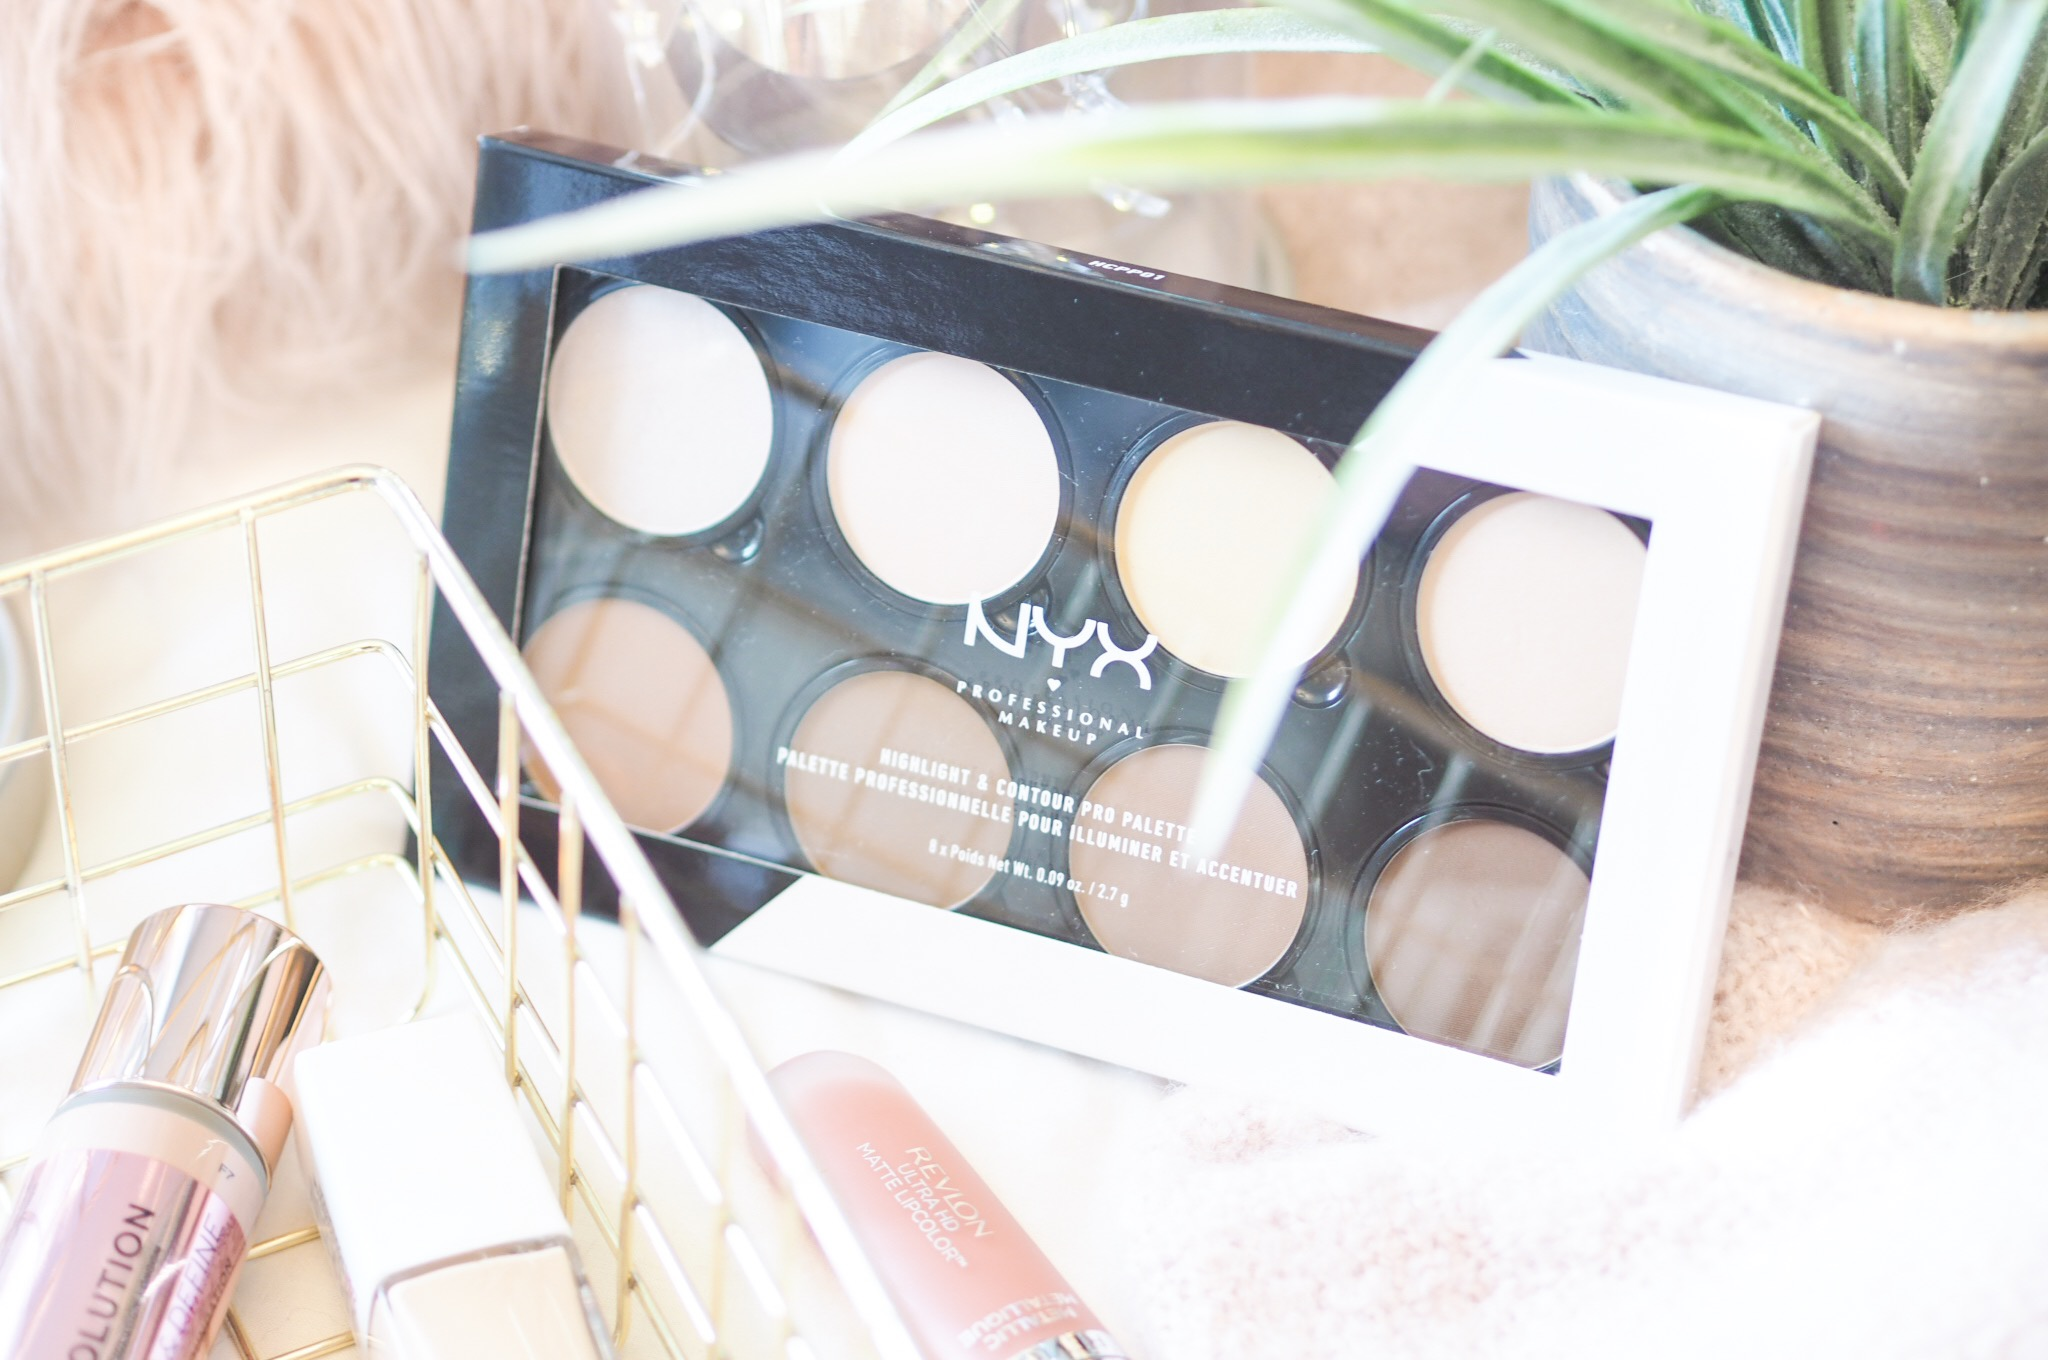 Nyx Professional Makeup Highlight & Contour Palette